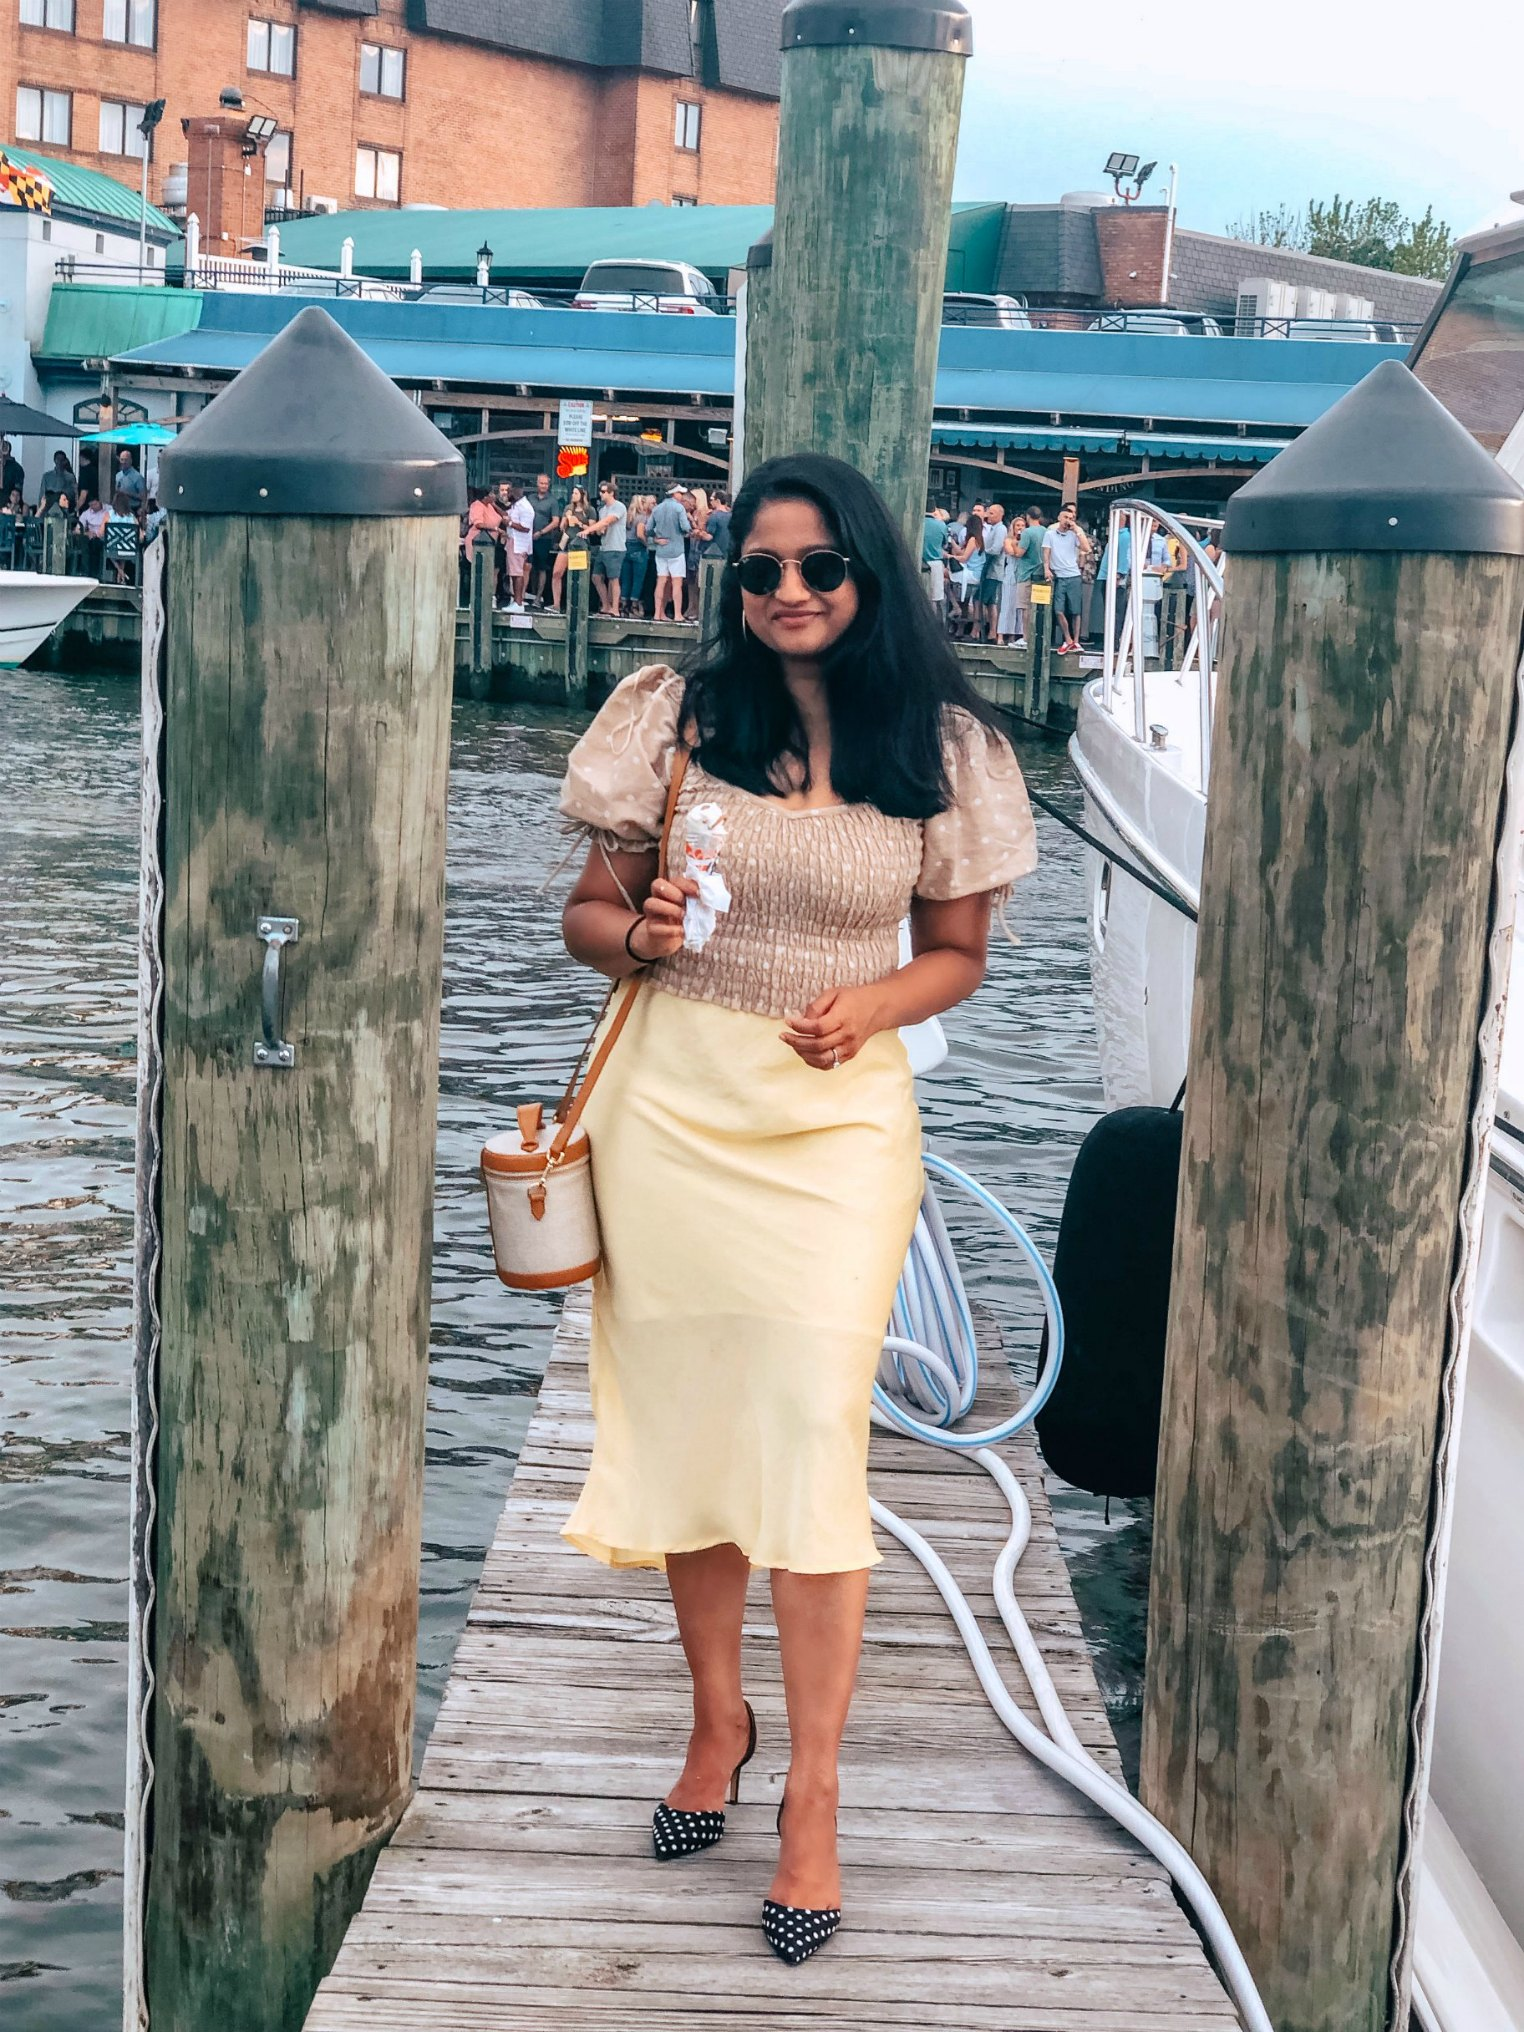 Top US modest fashion blog, Dreaming Loud, features their thoughts on Clothing Size: image of a woman wearing a Leith stain skirt, a polka dot smocked top, Ann Taylor polka dot pumps, Paravel crossbody bag, and Madewell hoop earrings.